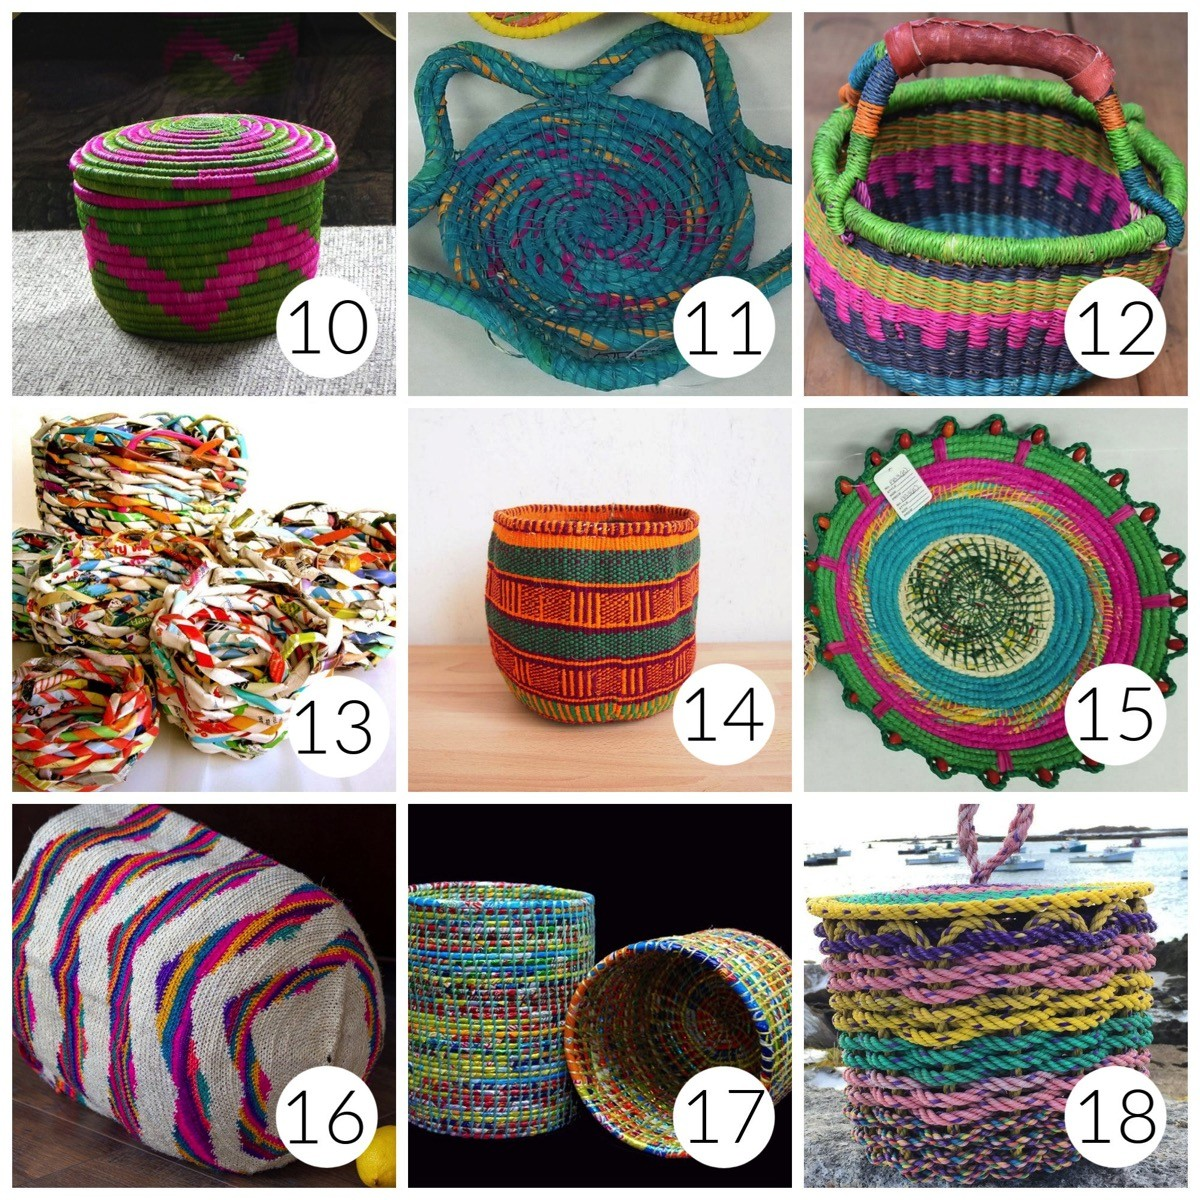 Colorful baskets for home decor